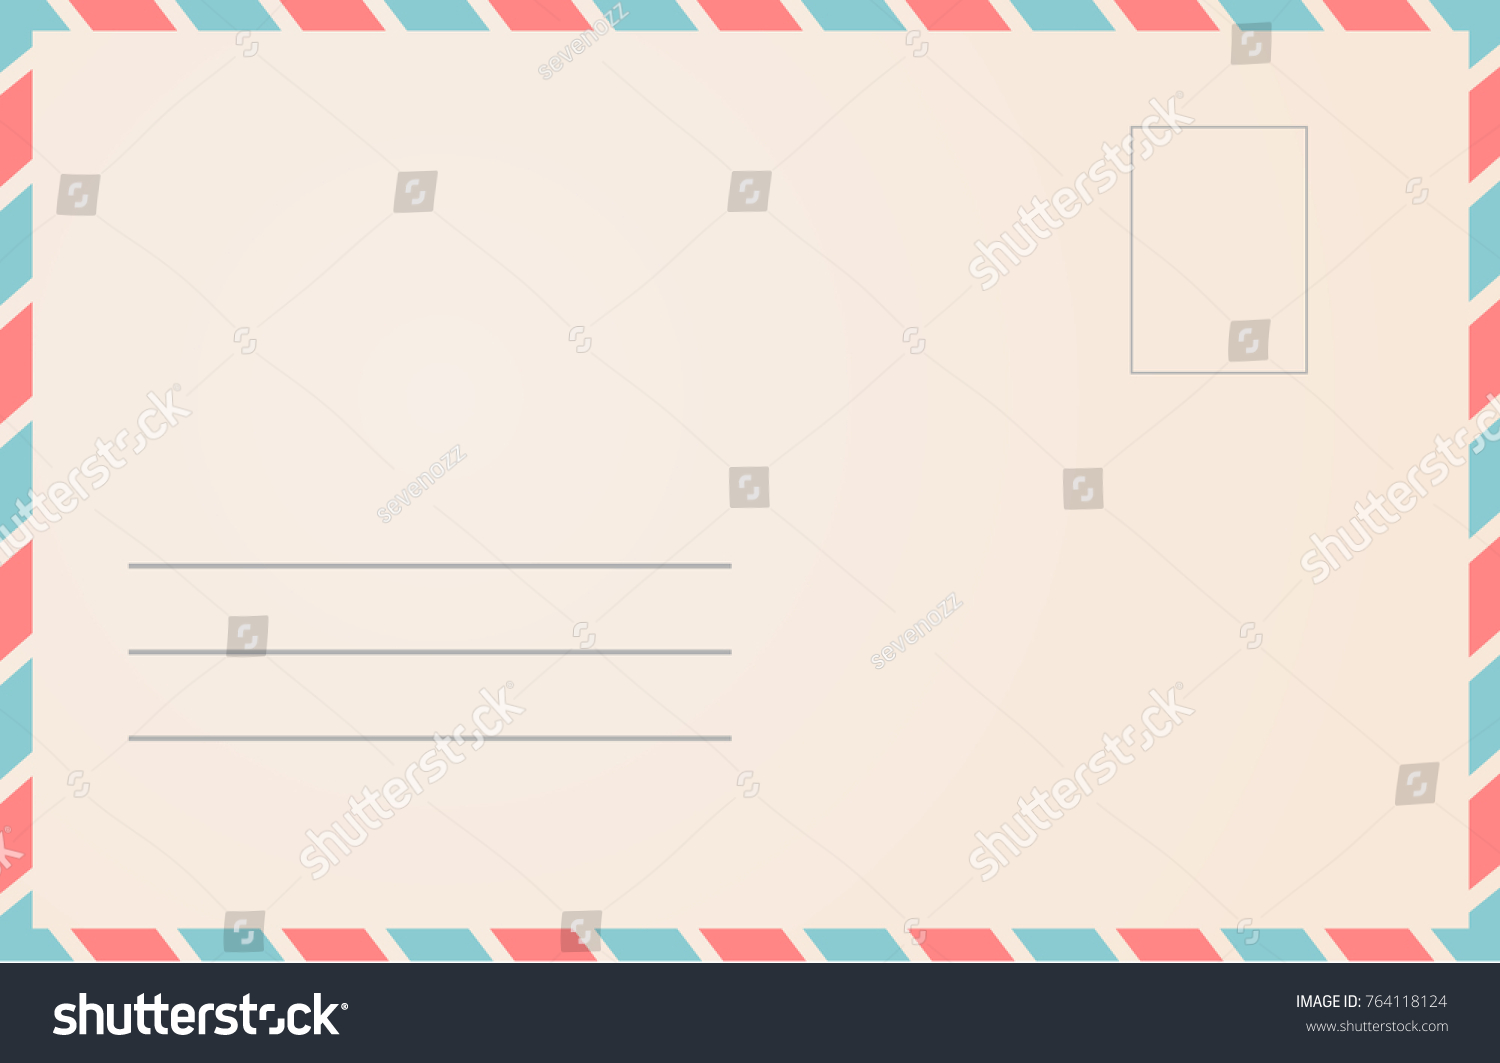 Postal Envelope Template. Mail Letter Design Illustration